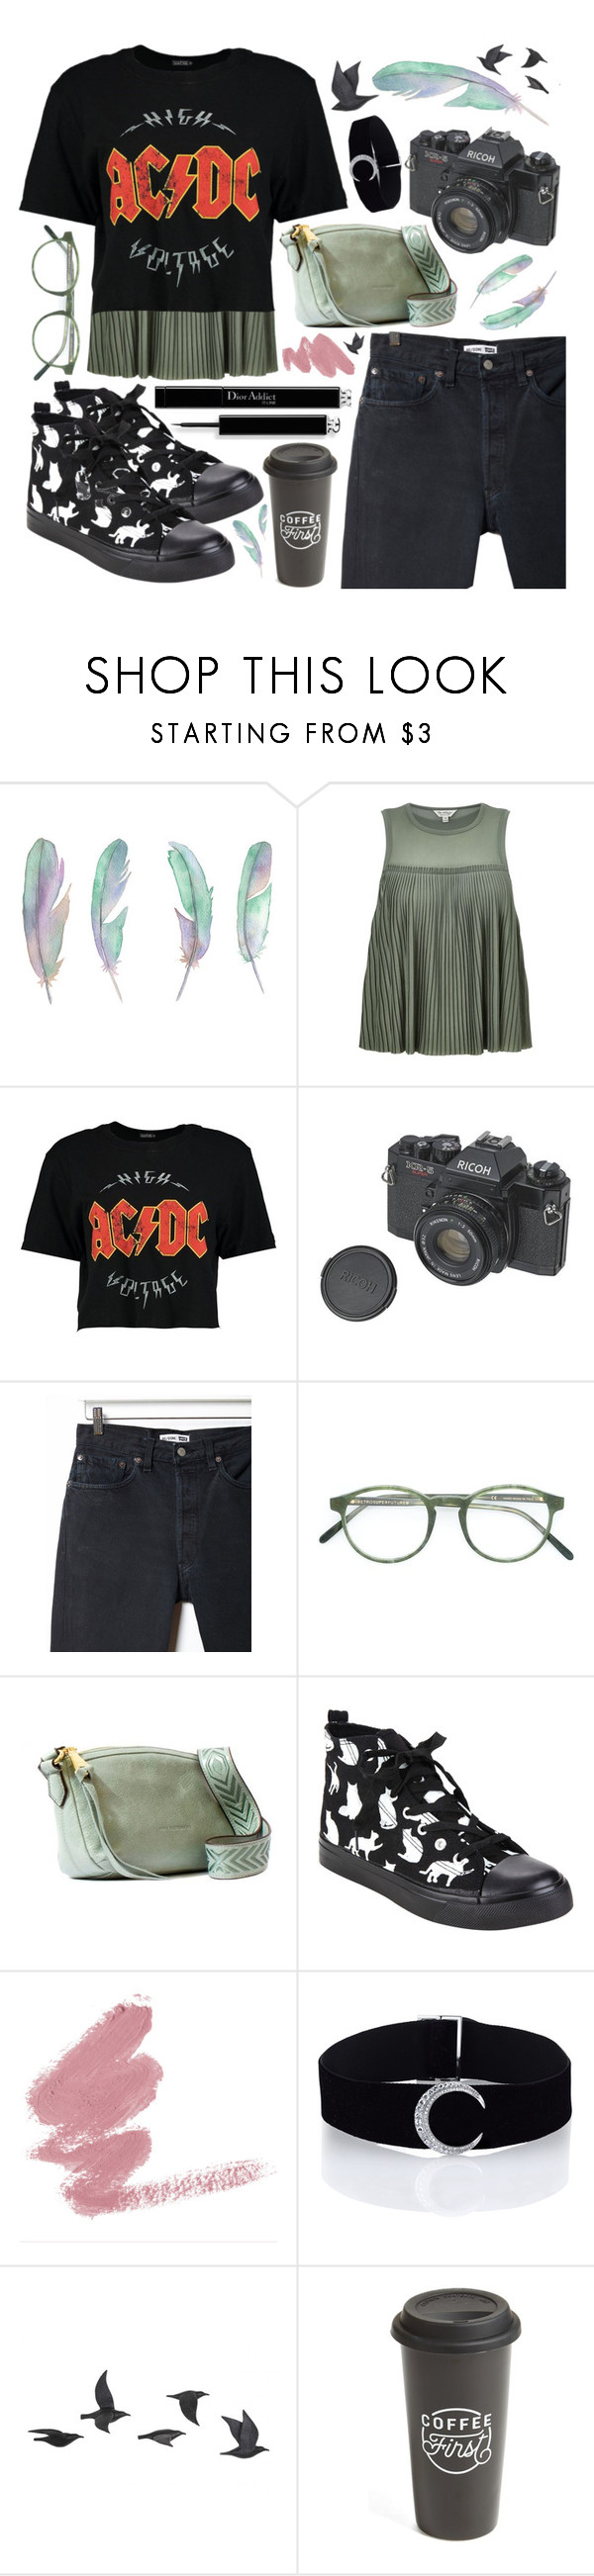 """""""Untitled #122"""" by iamasanta ❤ liked on Polyvore featuring Miss Selfridge, Boohoo, RE/DONE, RetroSuperFuture, Aimee Kestenberg, Jayson Home and The Created Co."""